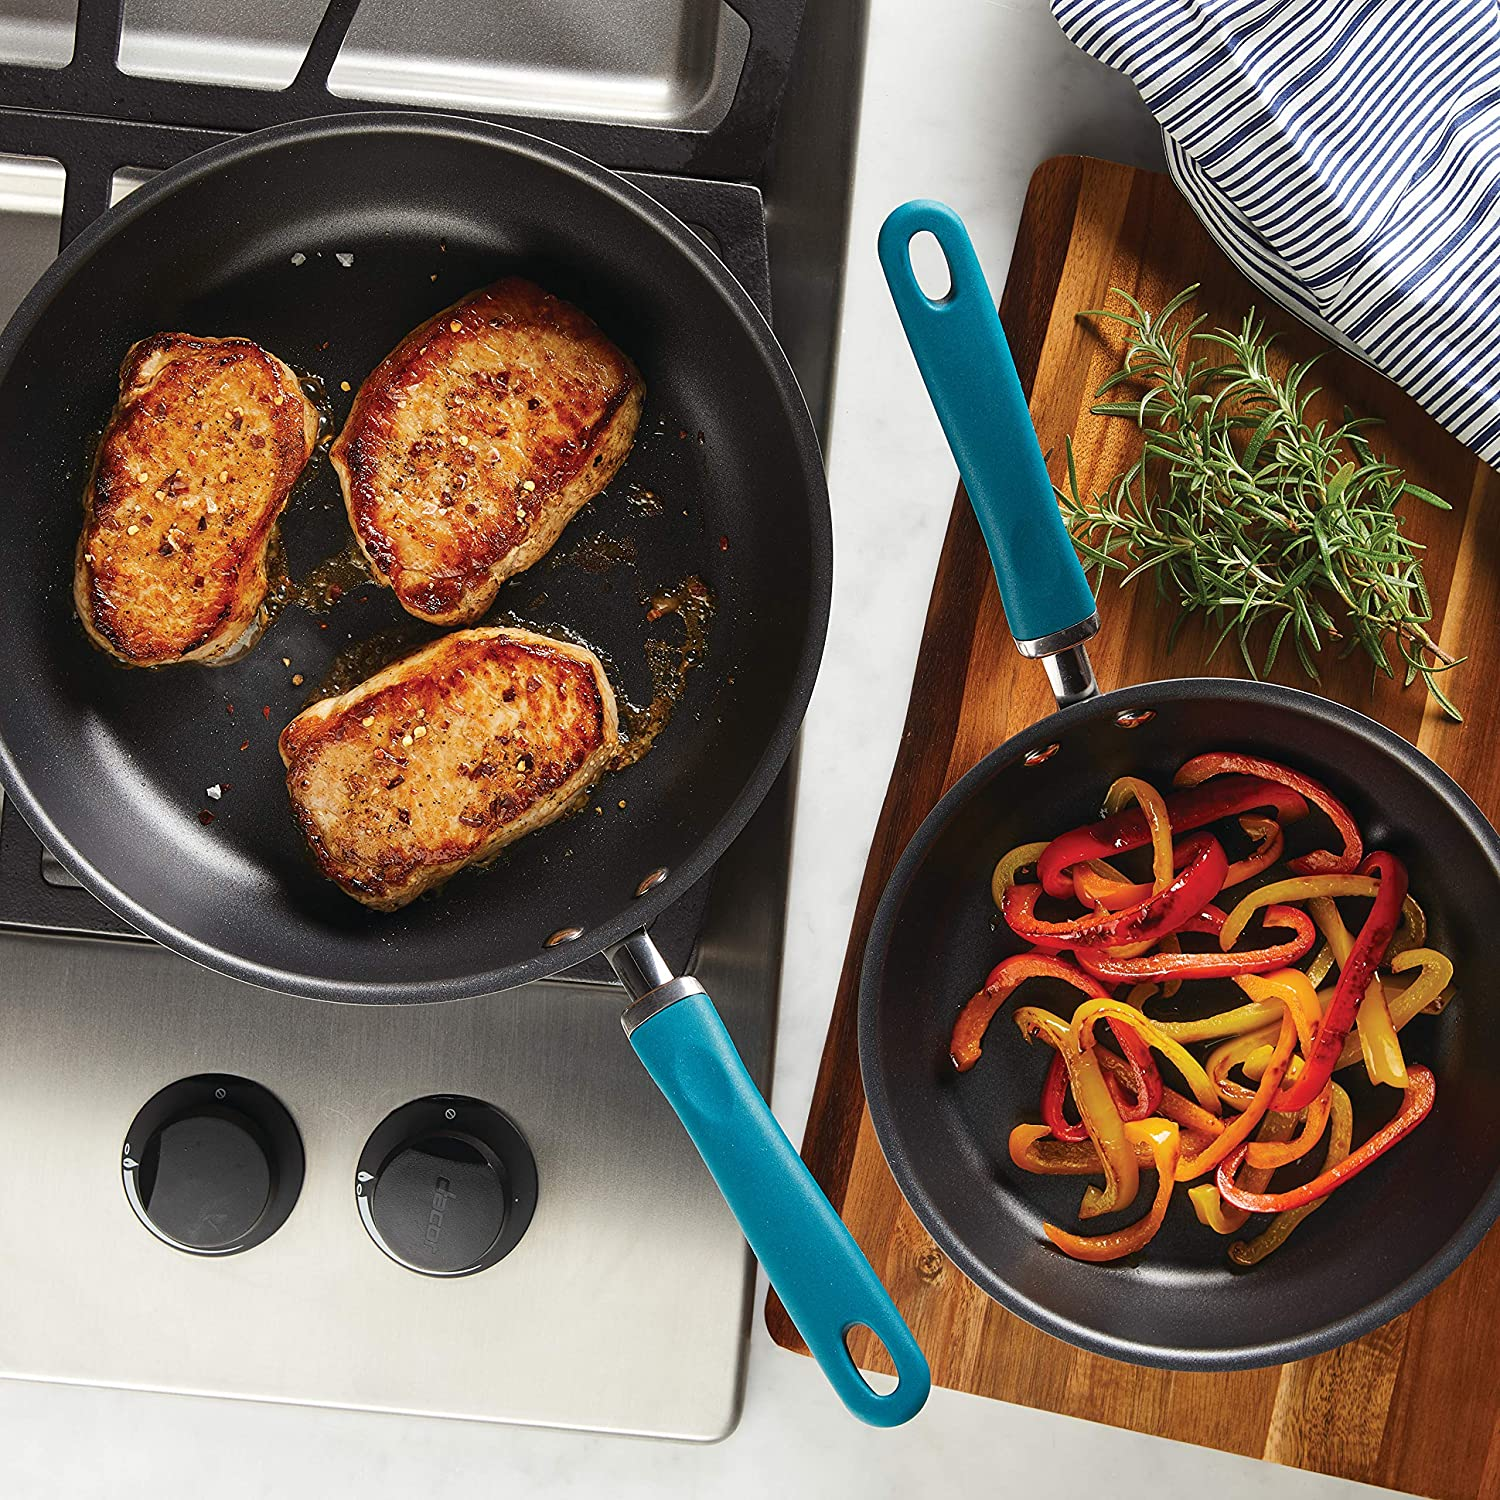 Rachael Ray 81127 Twin Pack Hard Anodized Aluminum Skillet Set, 2 Piece, Gray with Teal Handles